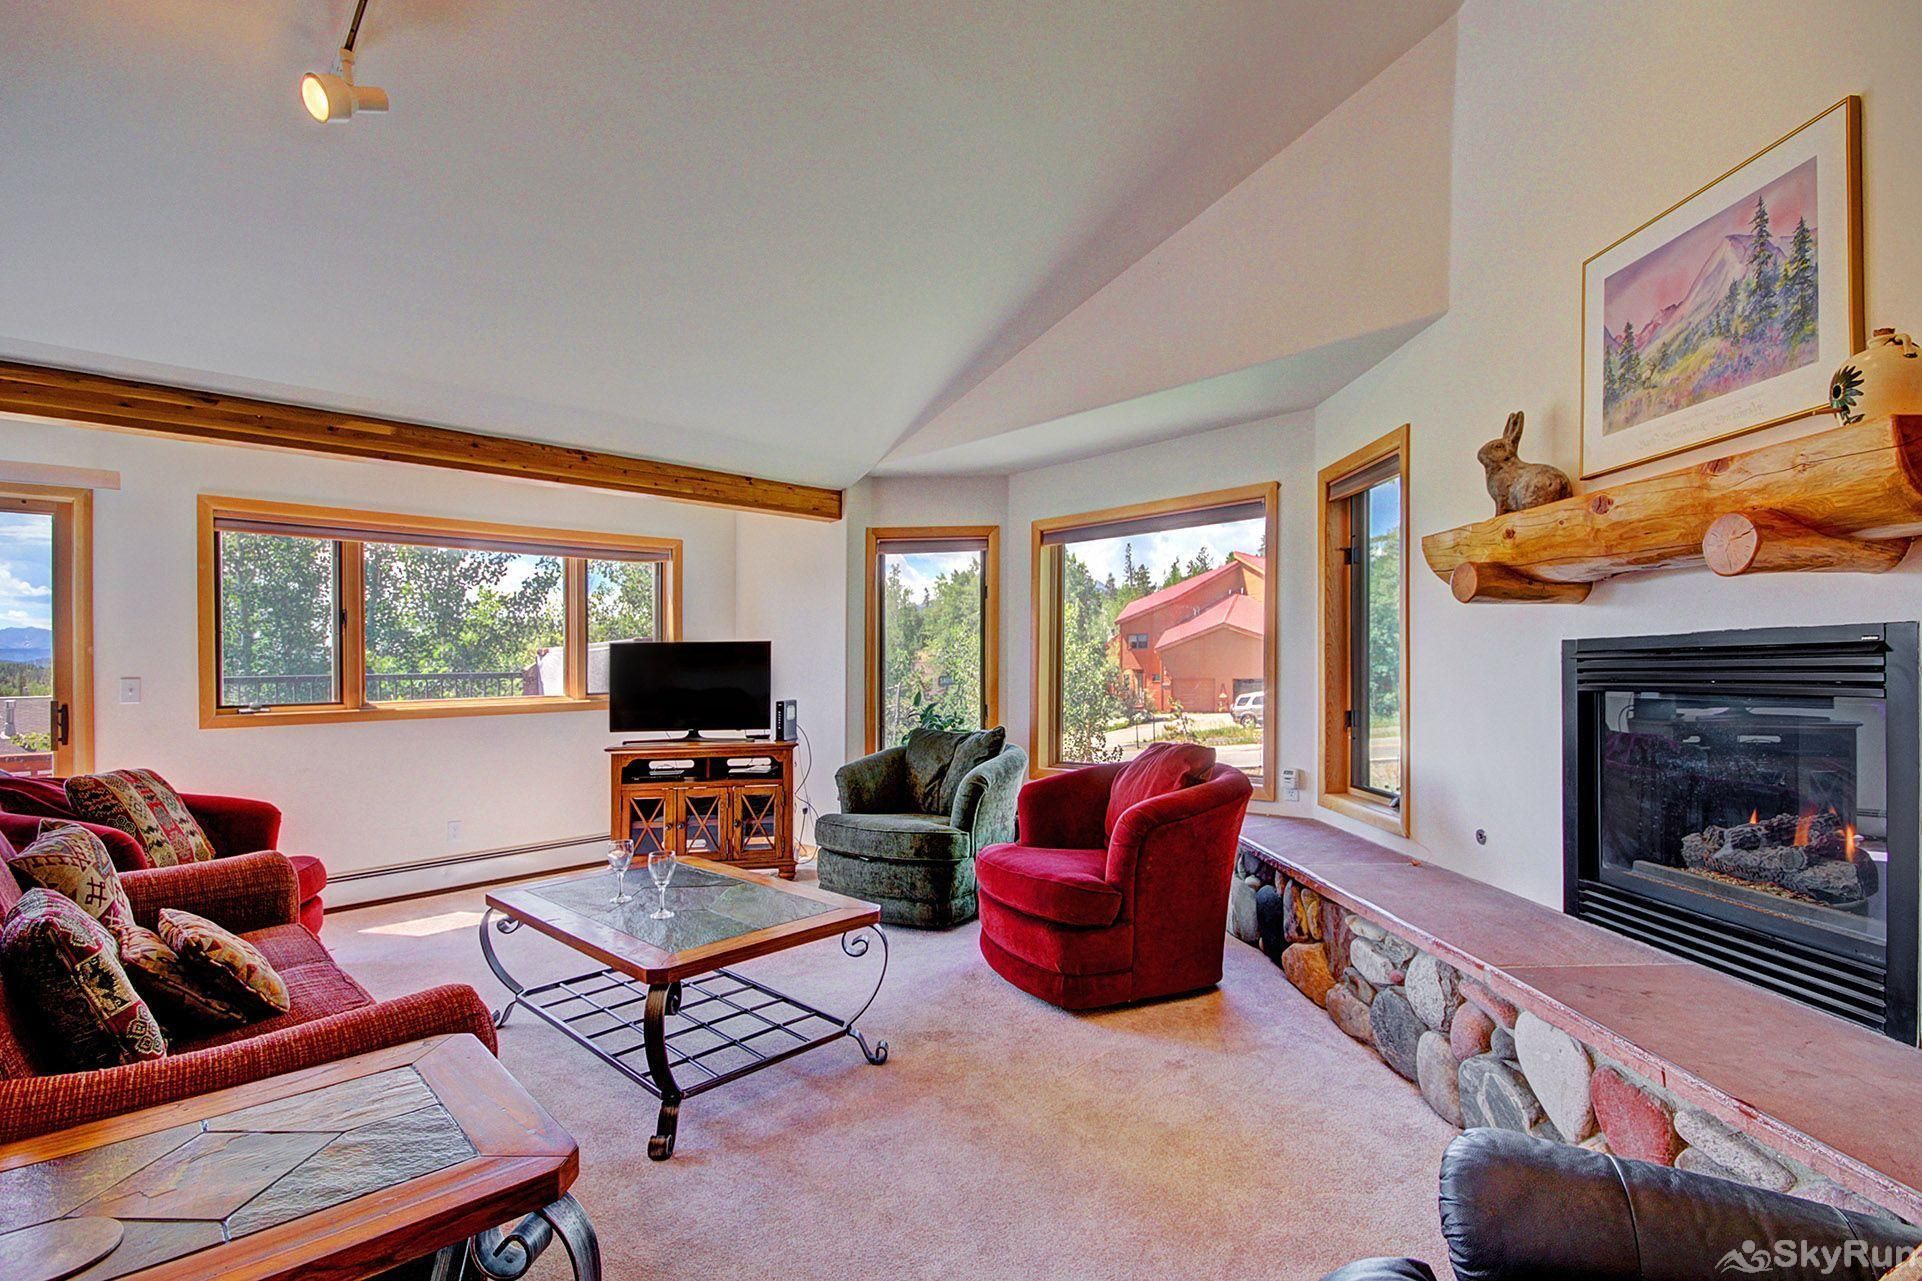 Sauterne Sanctuary 3BR 3BA Open living room with gorgeous views